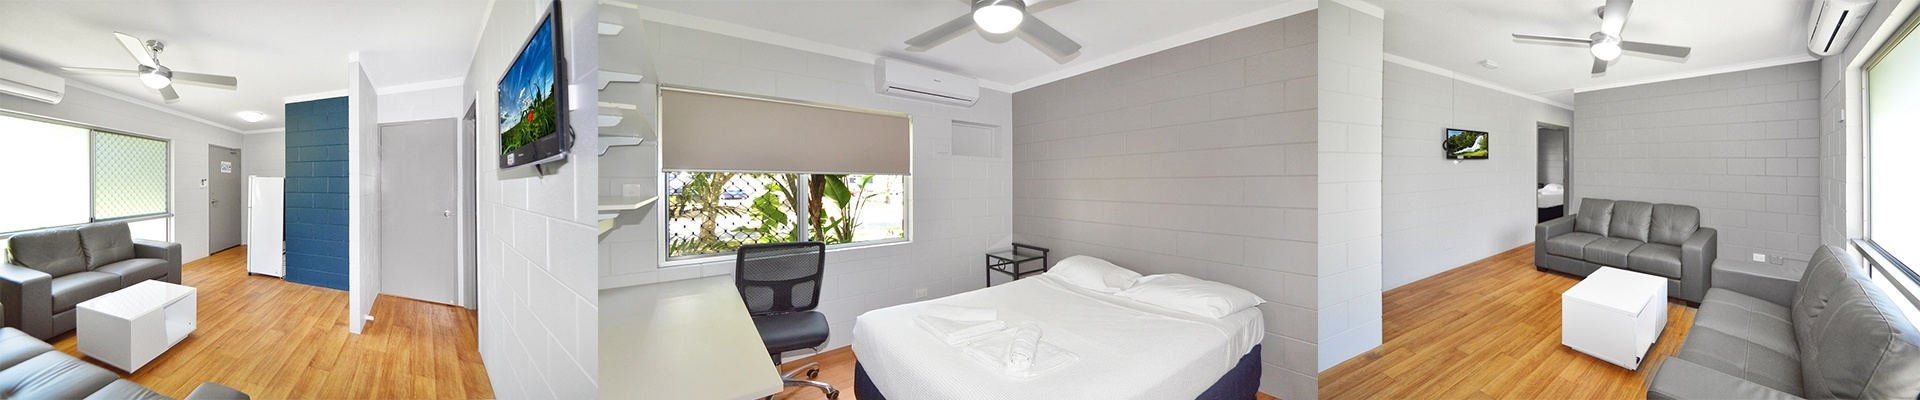 Apartment living at Cairns Student Lodge